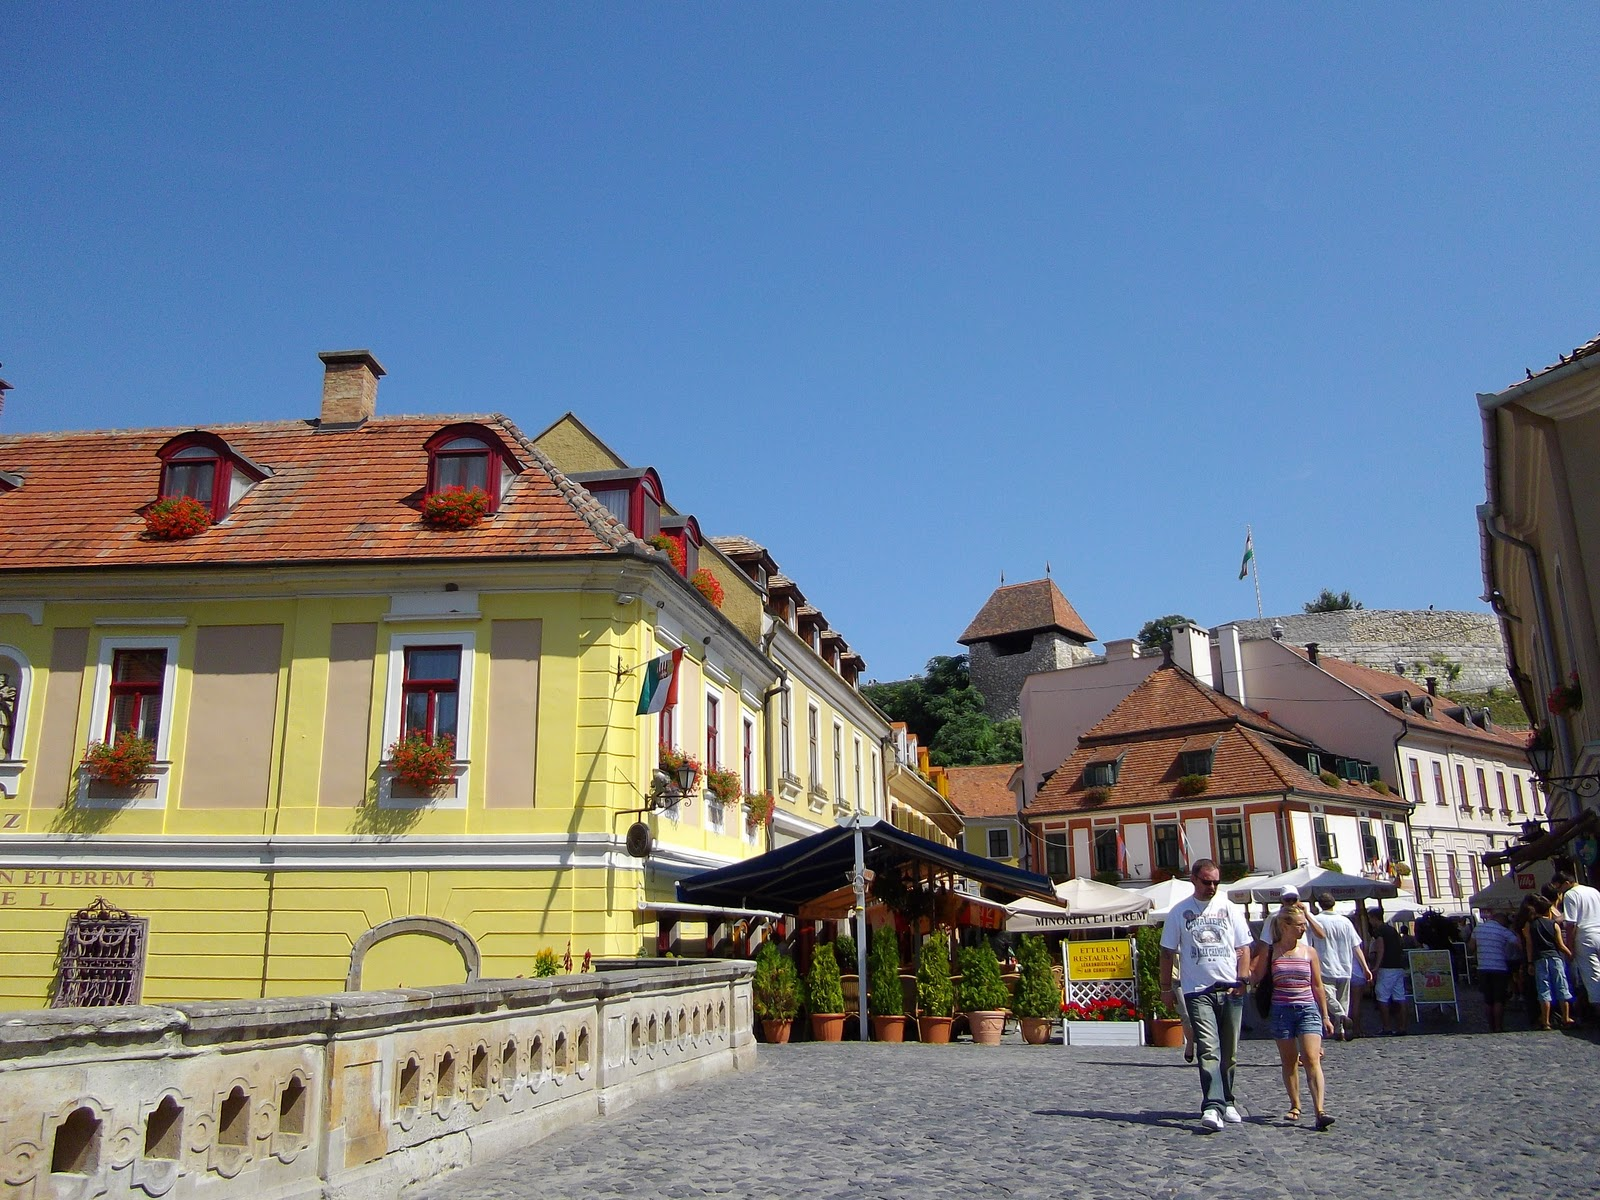 Eger Hungary  City pictures : Trip to Eger, Hungary | Life in Luxembourg